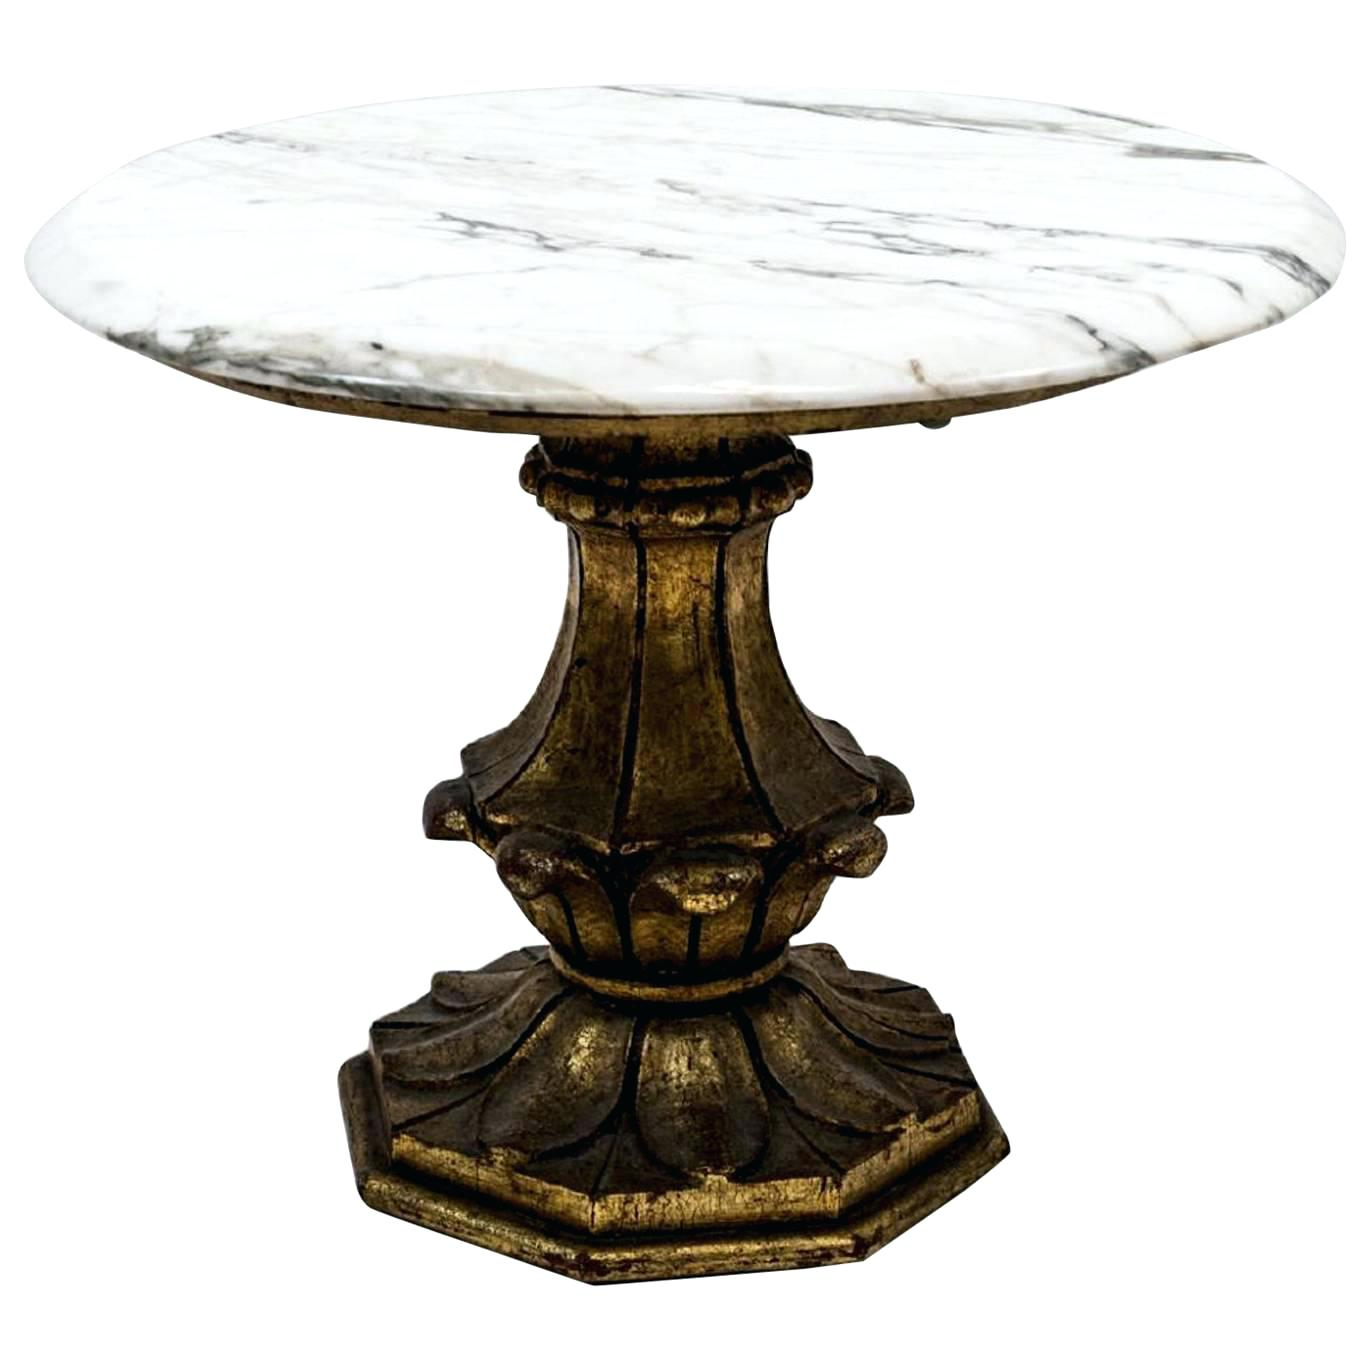 vintage accent table wood with marble top and ornate brass accents round base tables antique pedestal metal modern side killian west elm leather couch christmas tablecloths